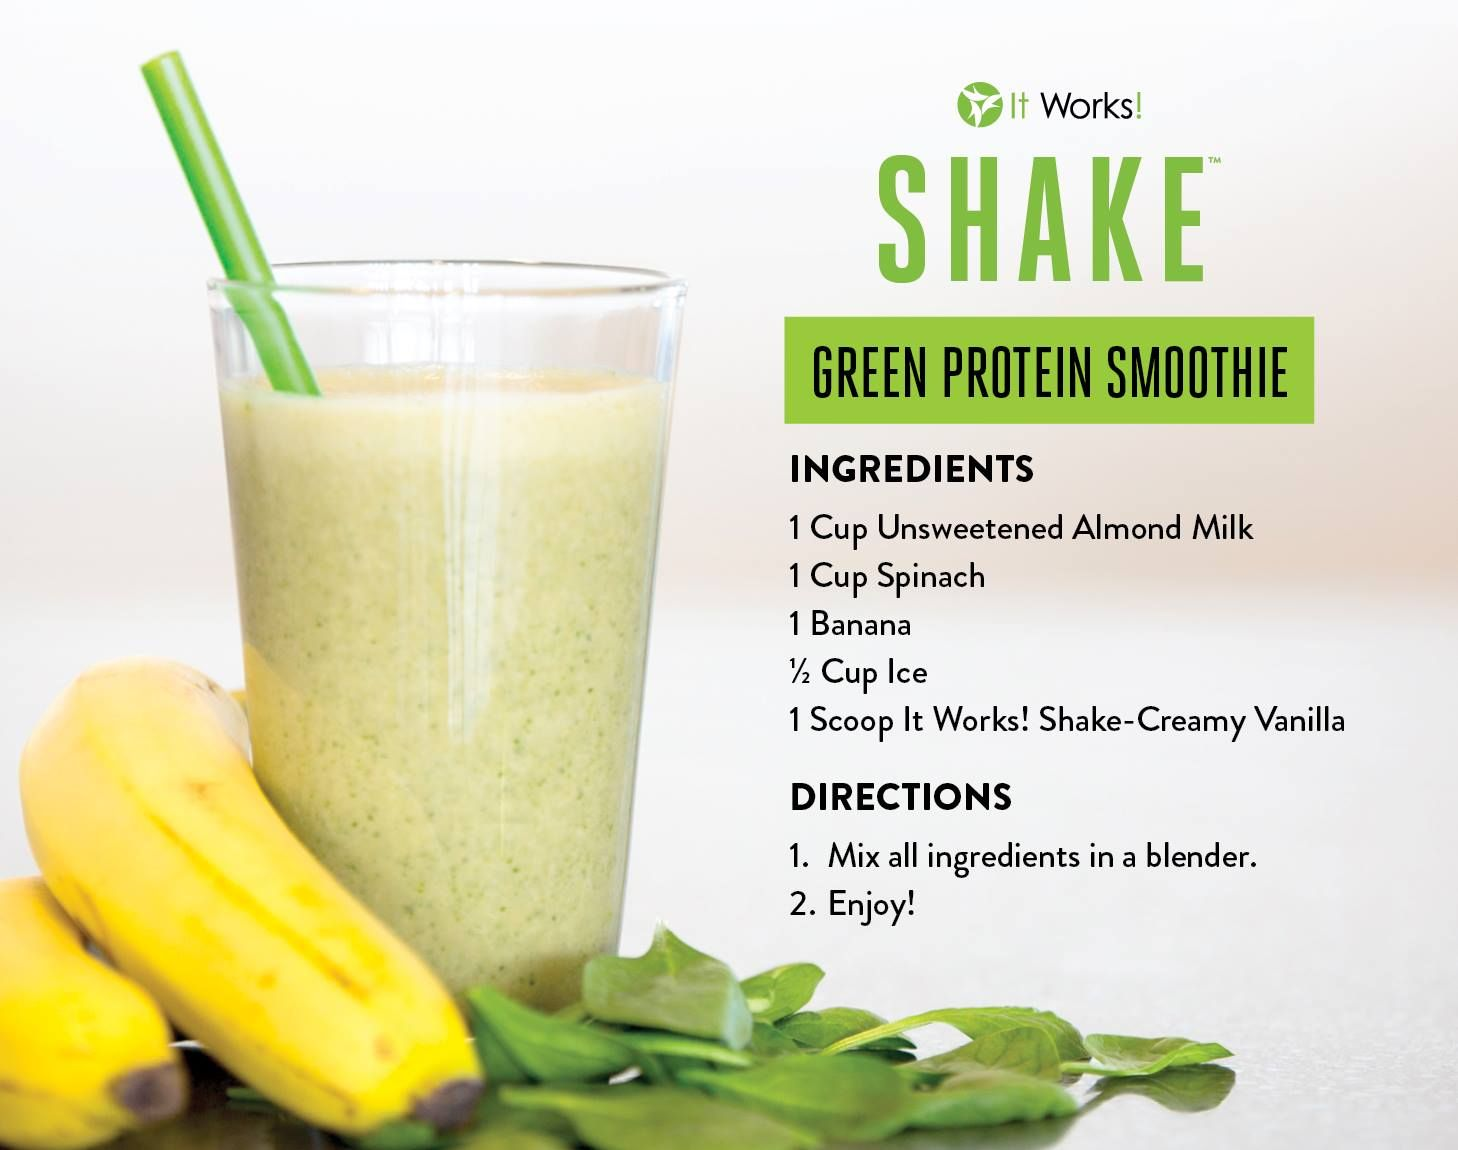 Have you tried the Green Protein Smoothie yet ? Complete with our NEW It Works! Shake, it's an easy and delicious way to get your daily protein ! It's time to commit to being healthy in 2017! Who's with us ?!